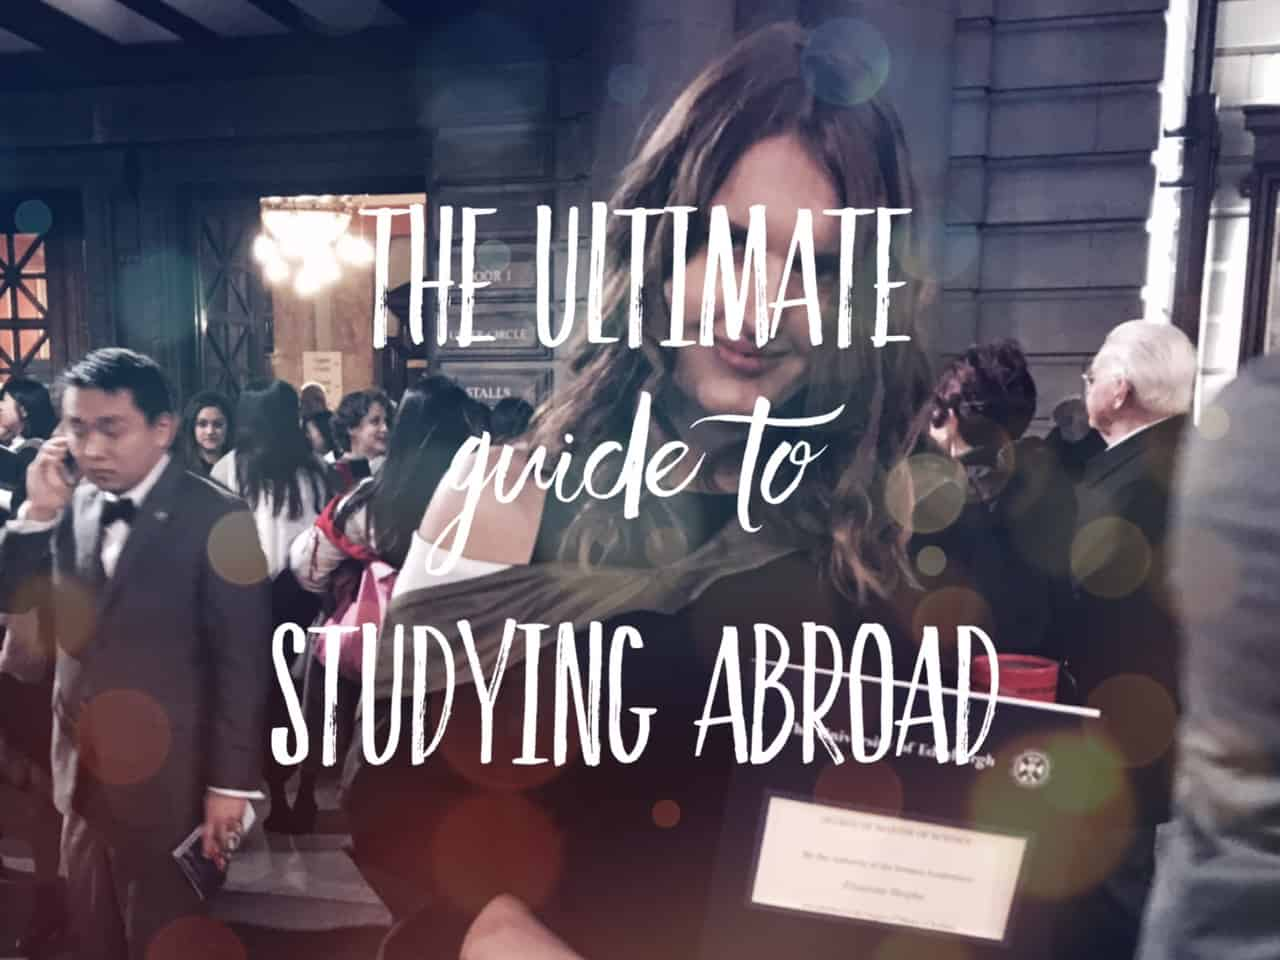 The ultimate guide to studying abroad: travel bloggers tell about their experiences in 15 countries